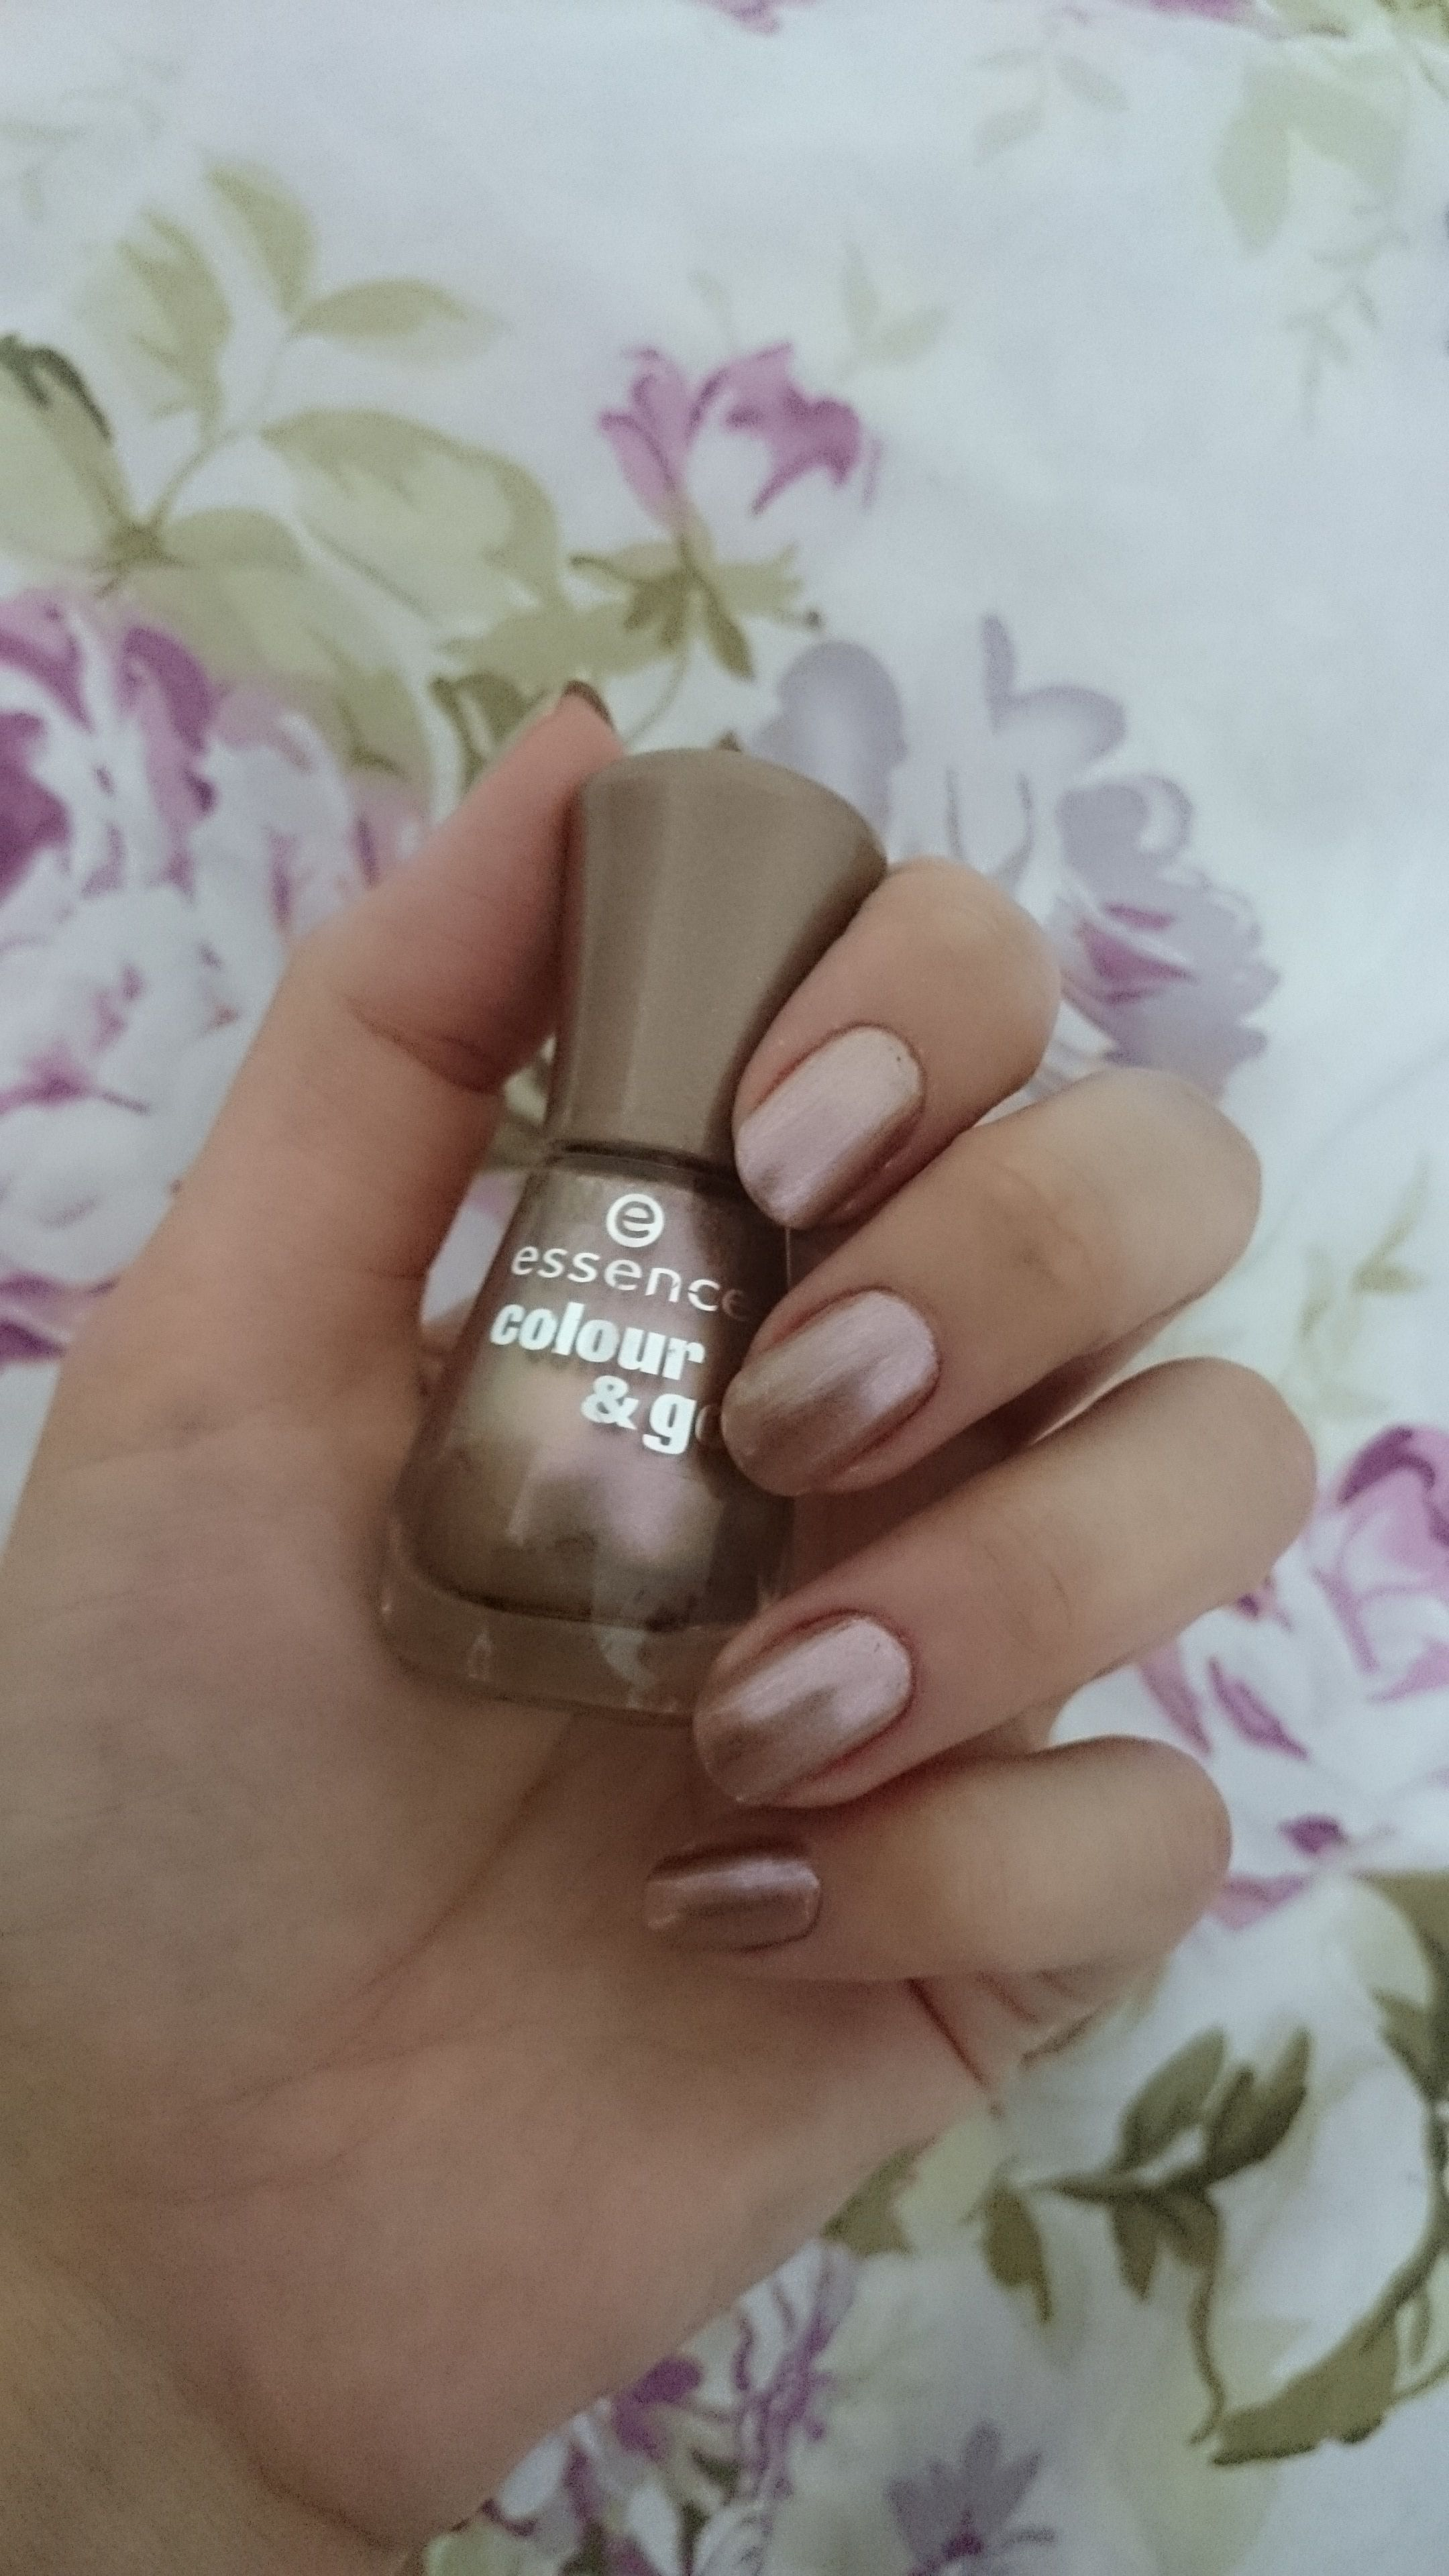 Essence Nail Polishs мεяcεdεн | Nail magic | Pinterest | Esmalte ...